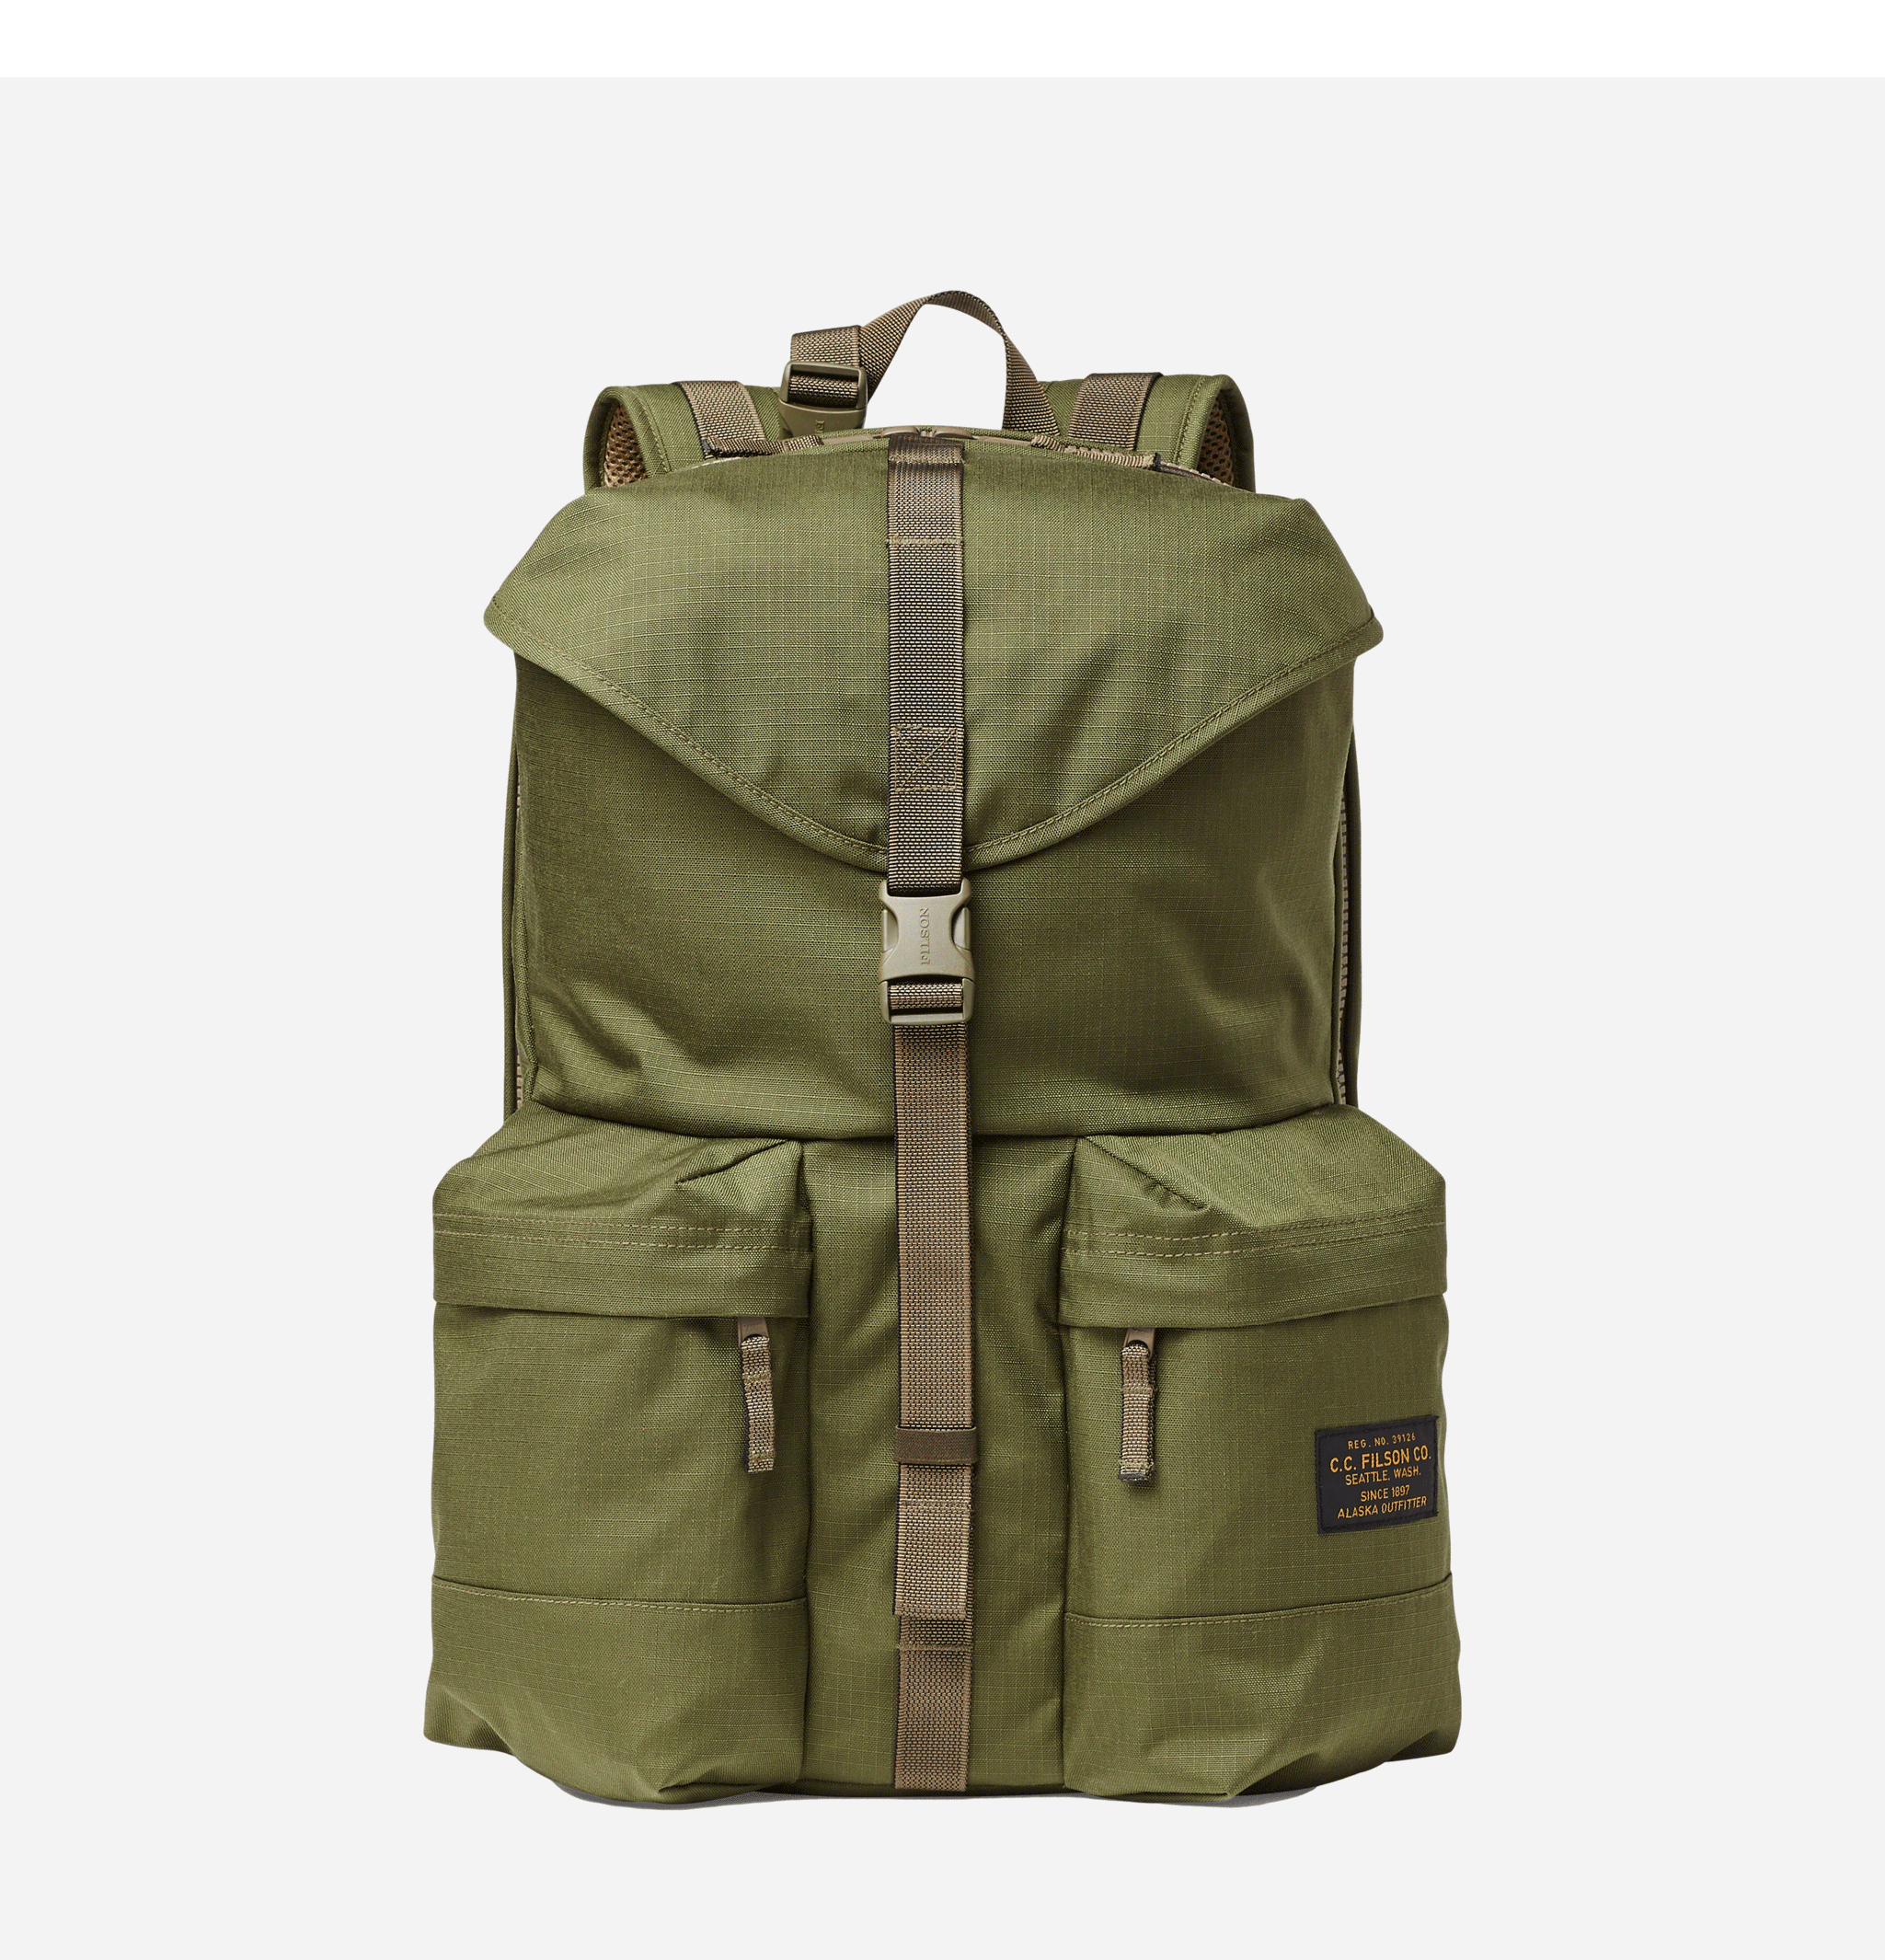 20115929 - Ripstop Backpack